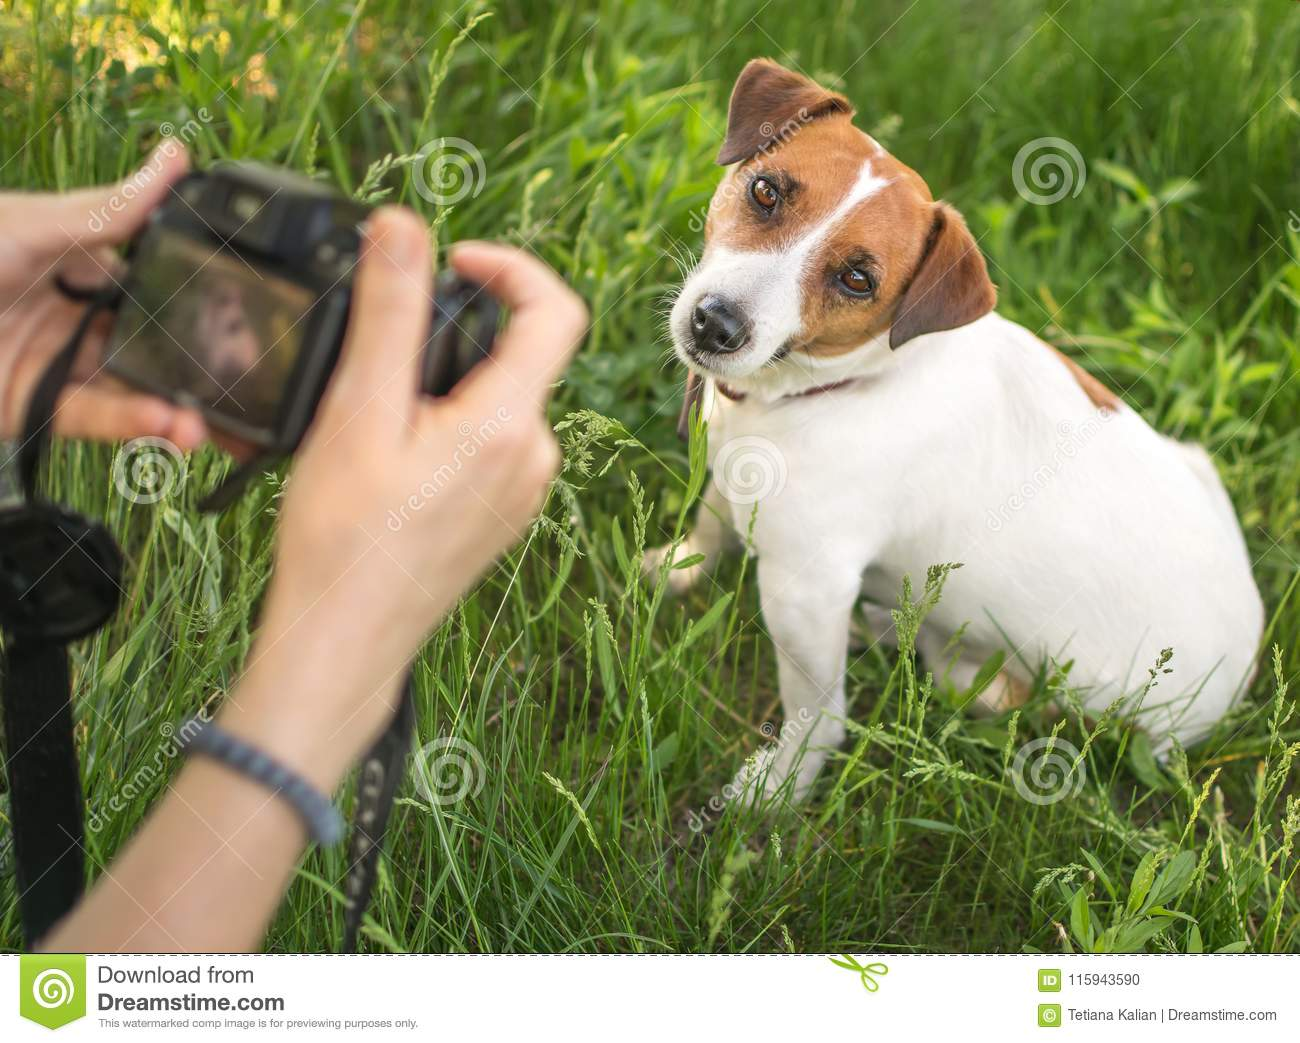 Young woman photographer taking a photo of sitting small dog jack russel terrier outside in green summer park in grass